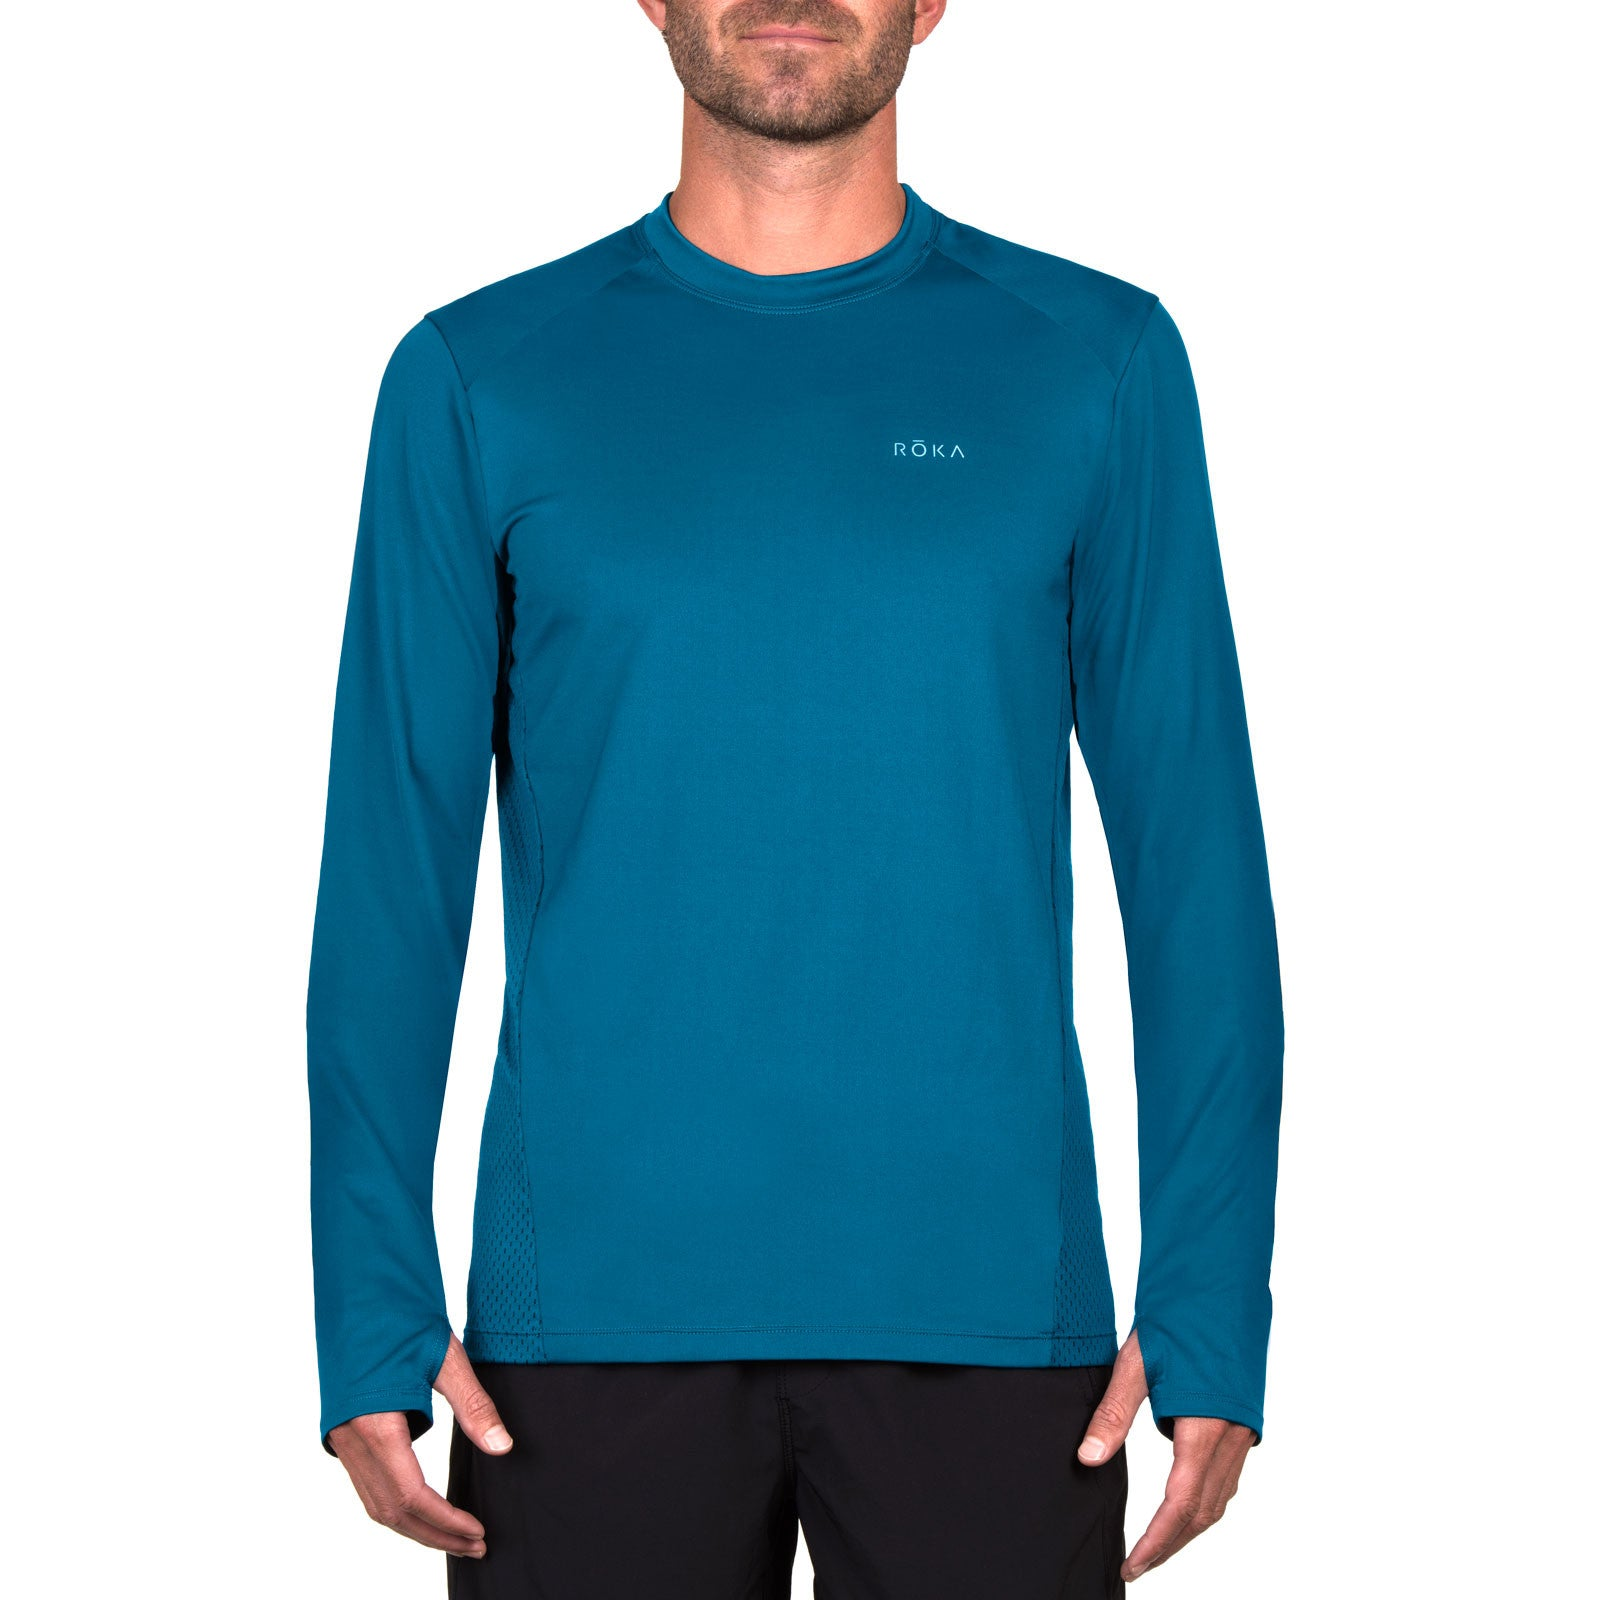 Men's Elite All-Season Run LS Shirt (Neptune)